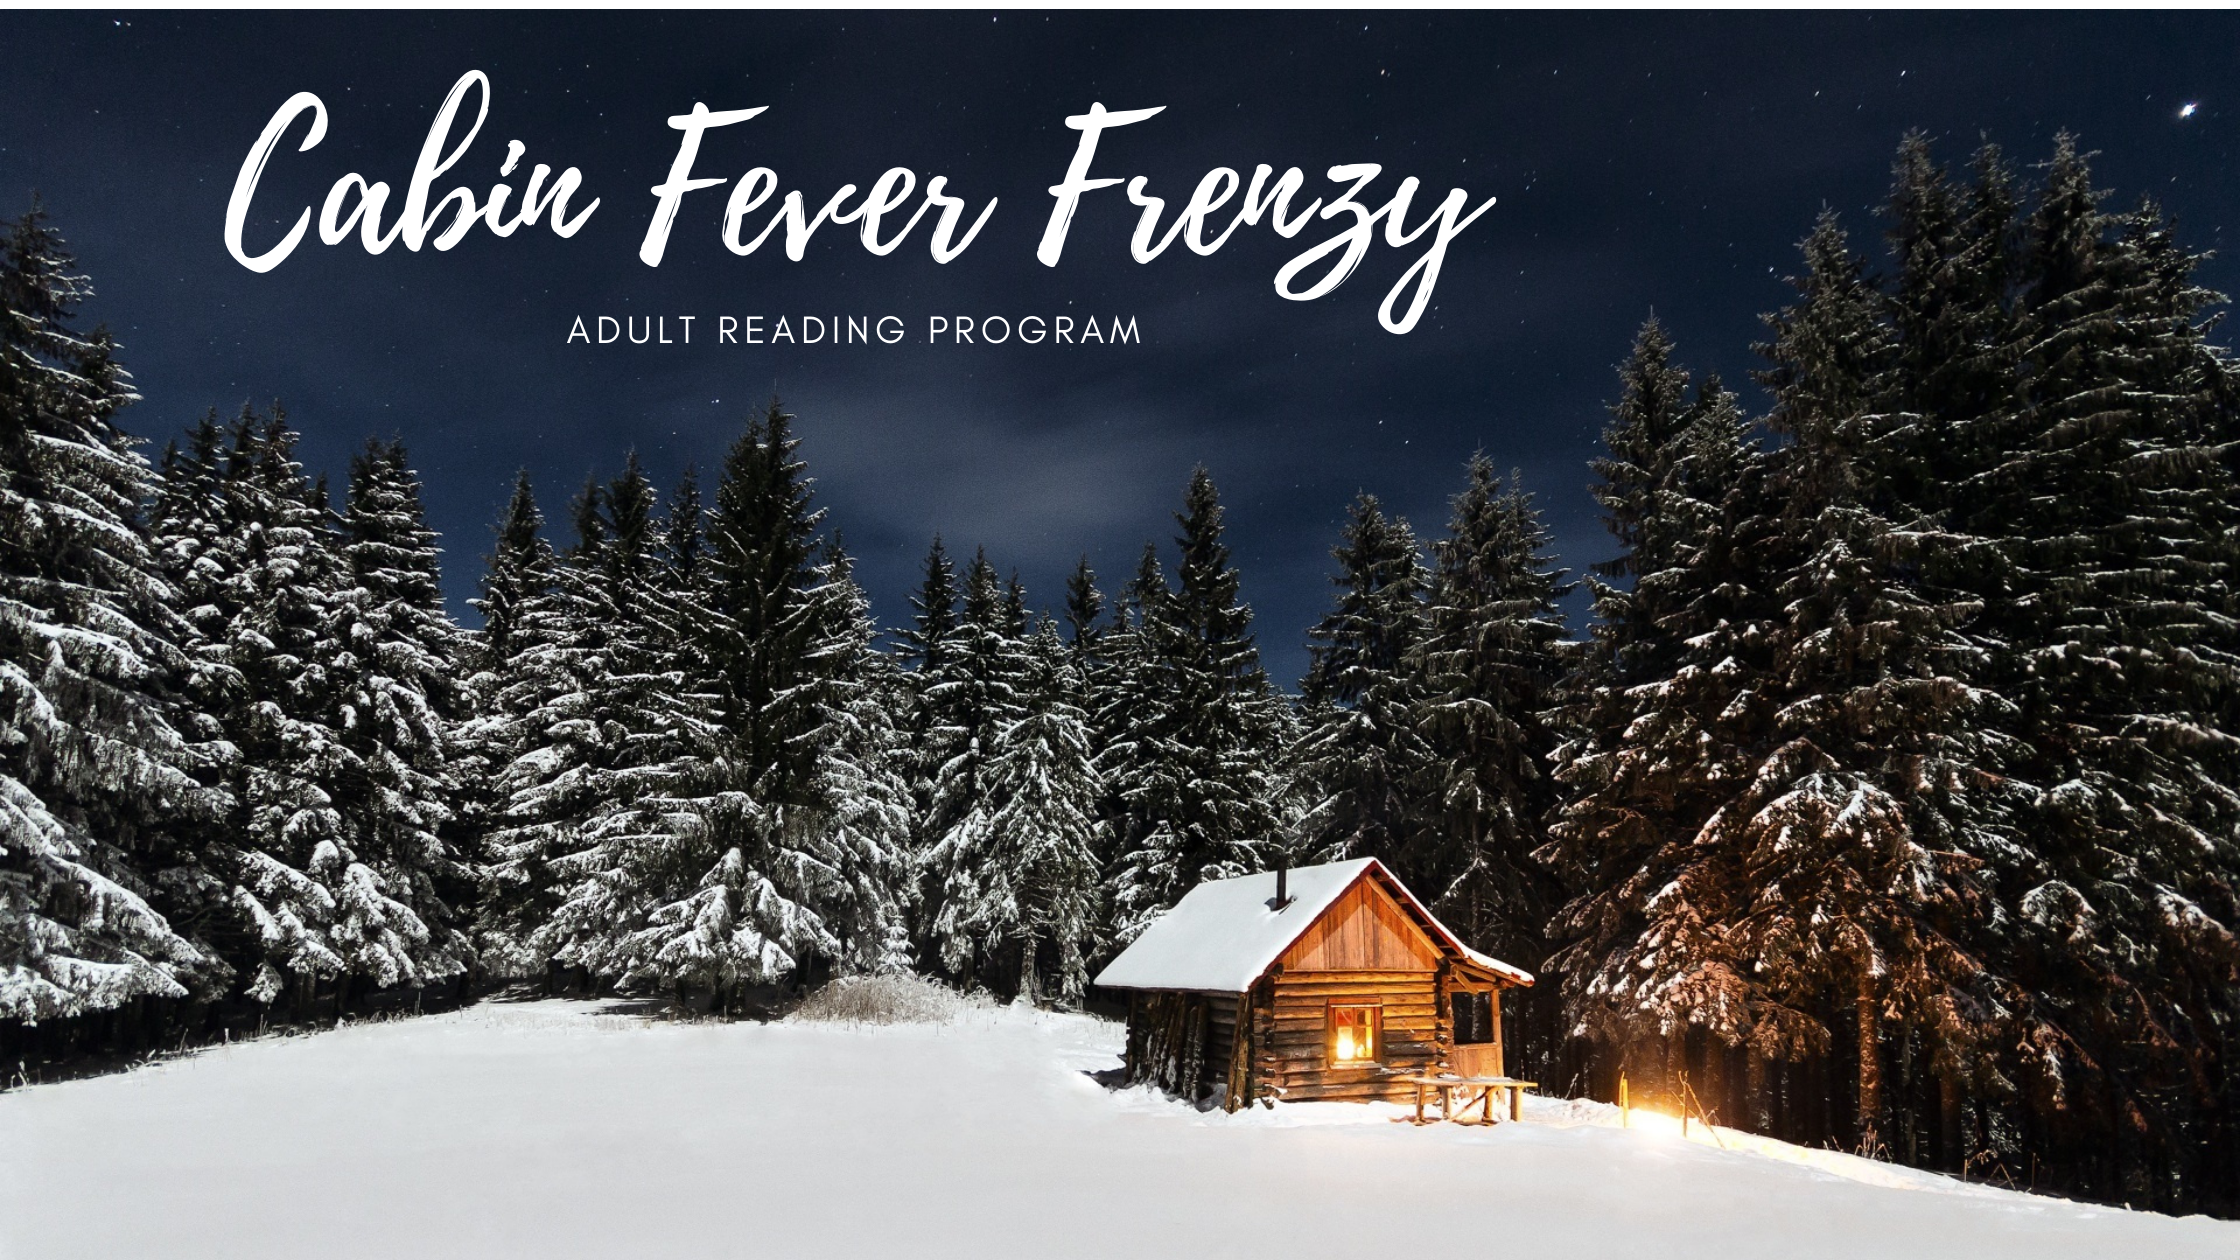 Adult Cabin Fever Frenzy Page